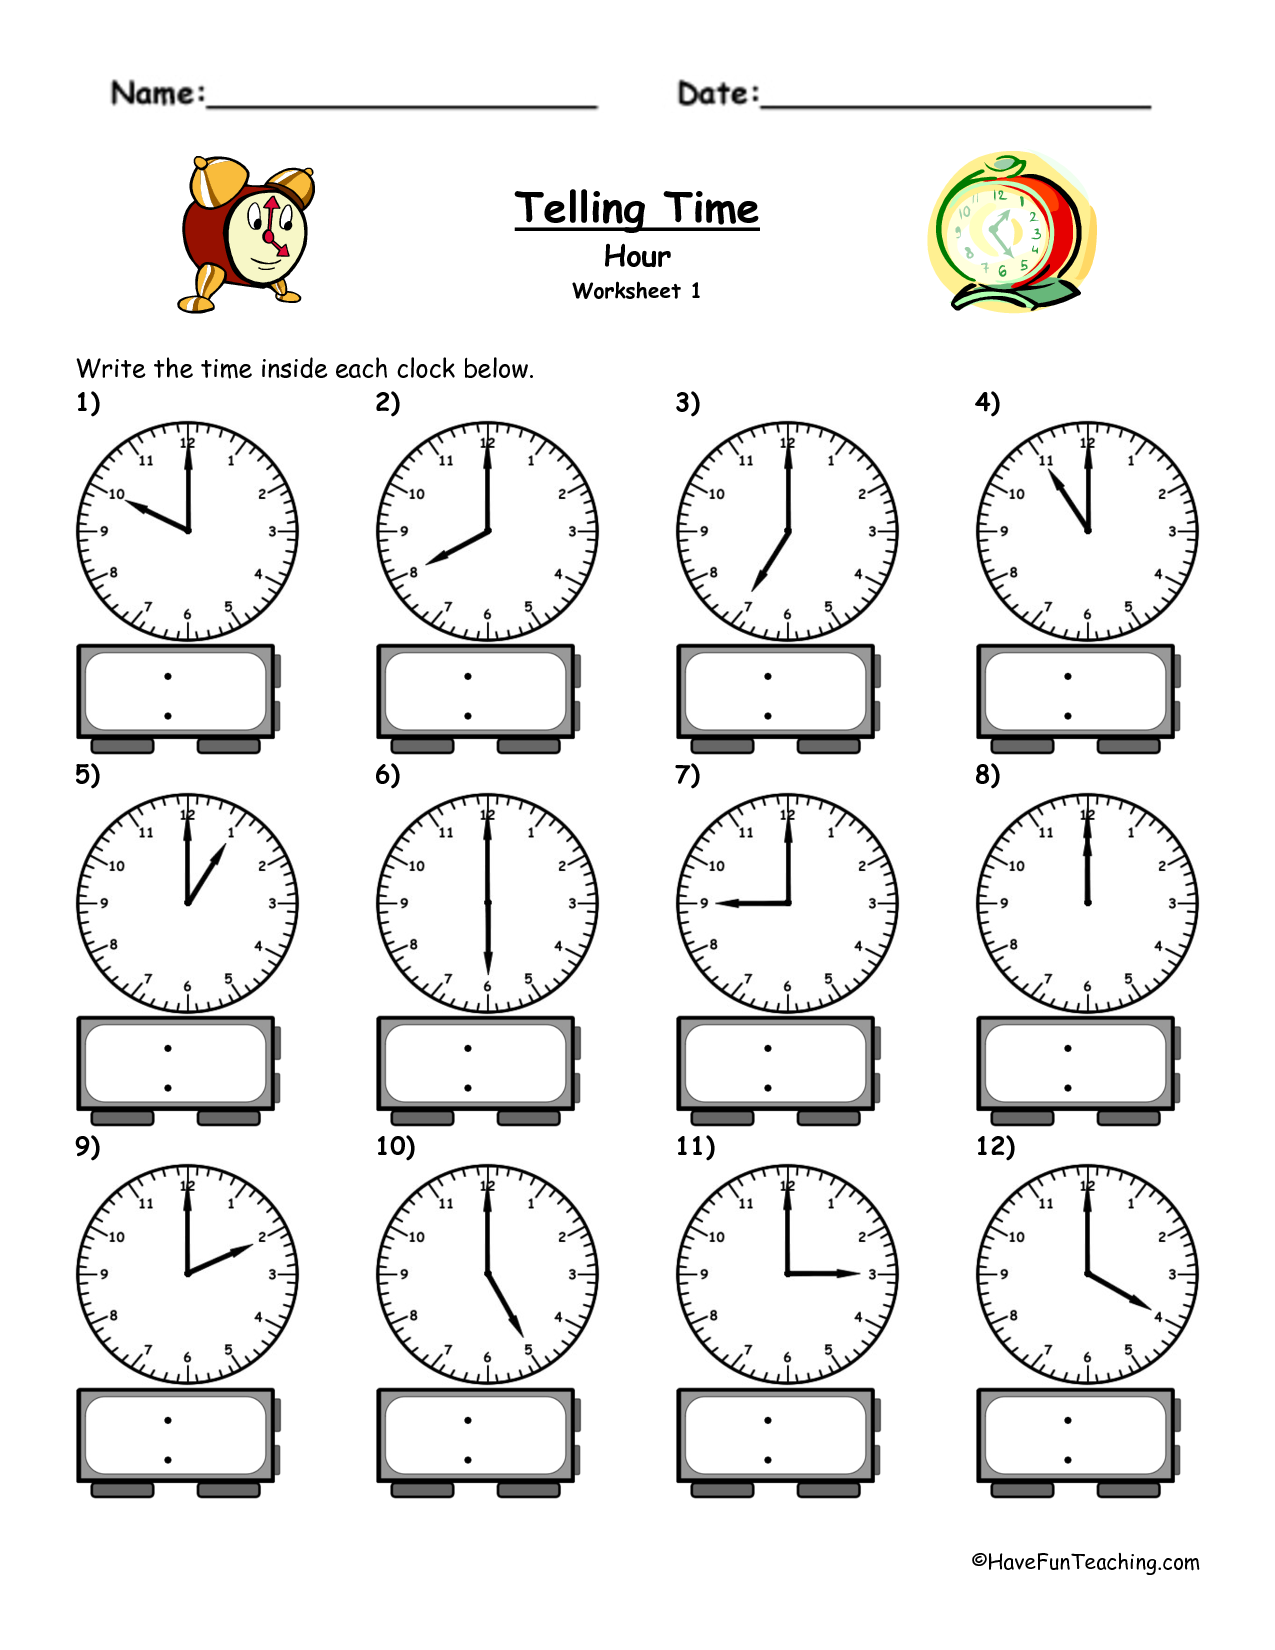 Worksheets Telling Time Worksheets Kindergarten time worksheets telling favorite recipes worksheets